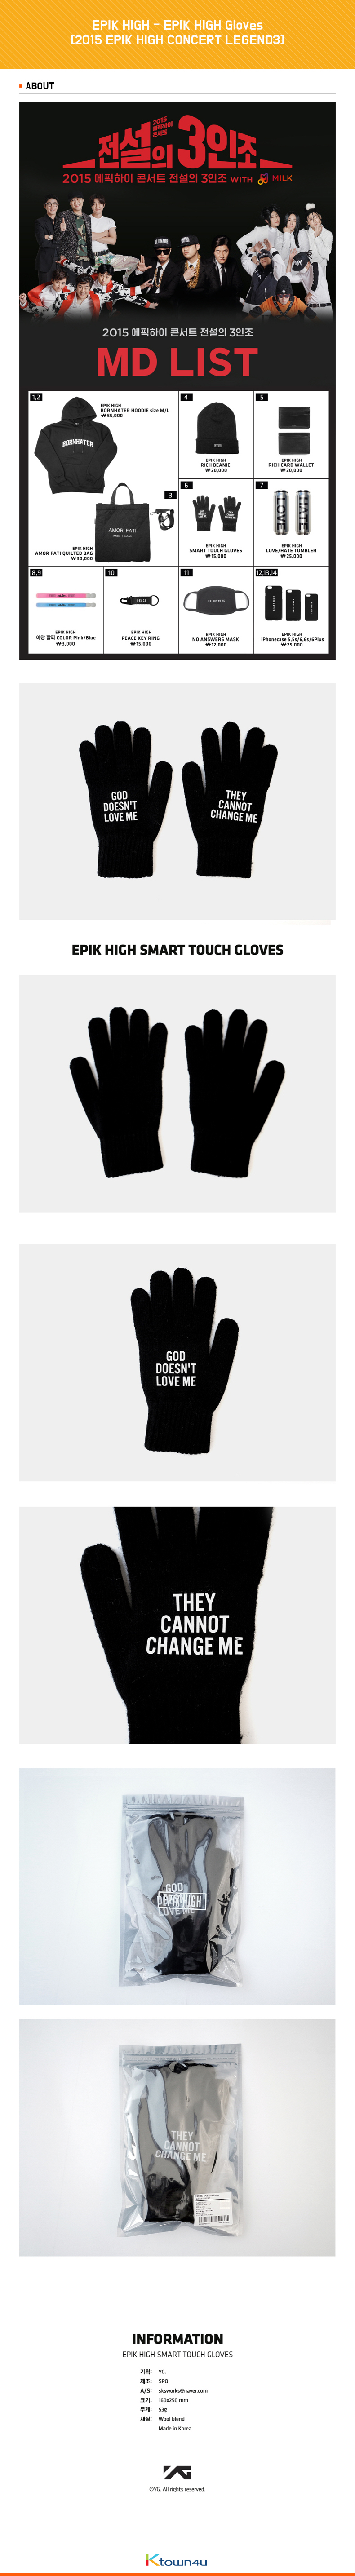 EPIK HIGH - EPIK HIGH Gloves [2015 EPIK HIGH CONCERT LEGEND3]